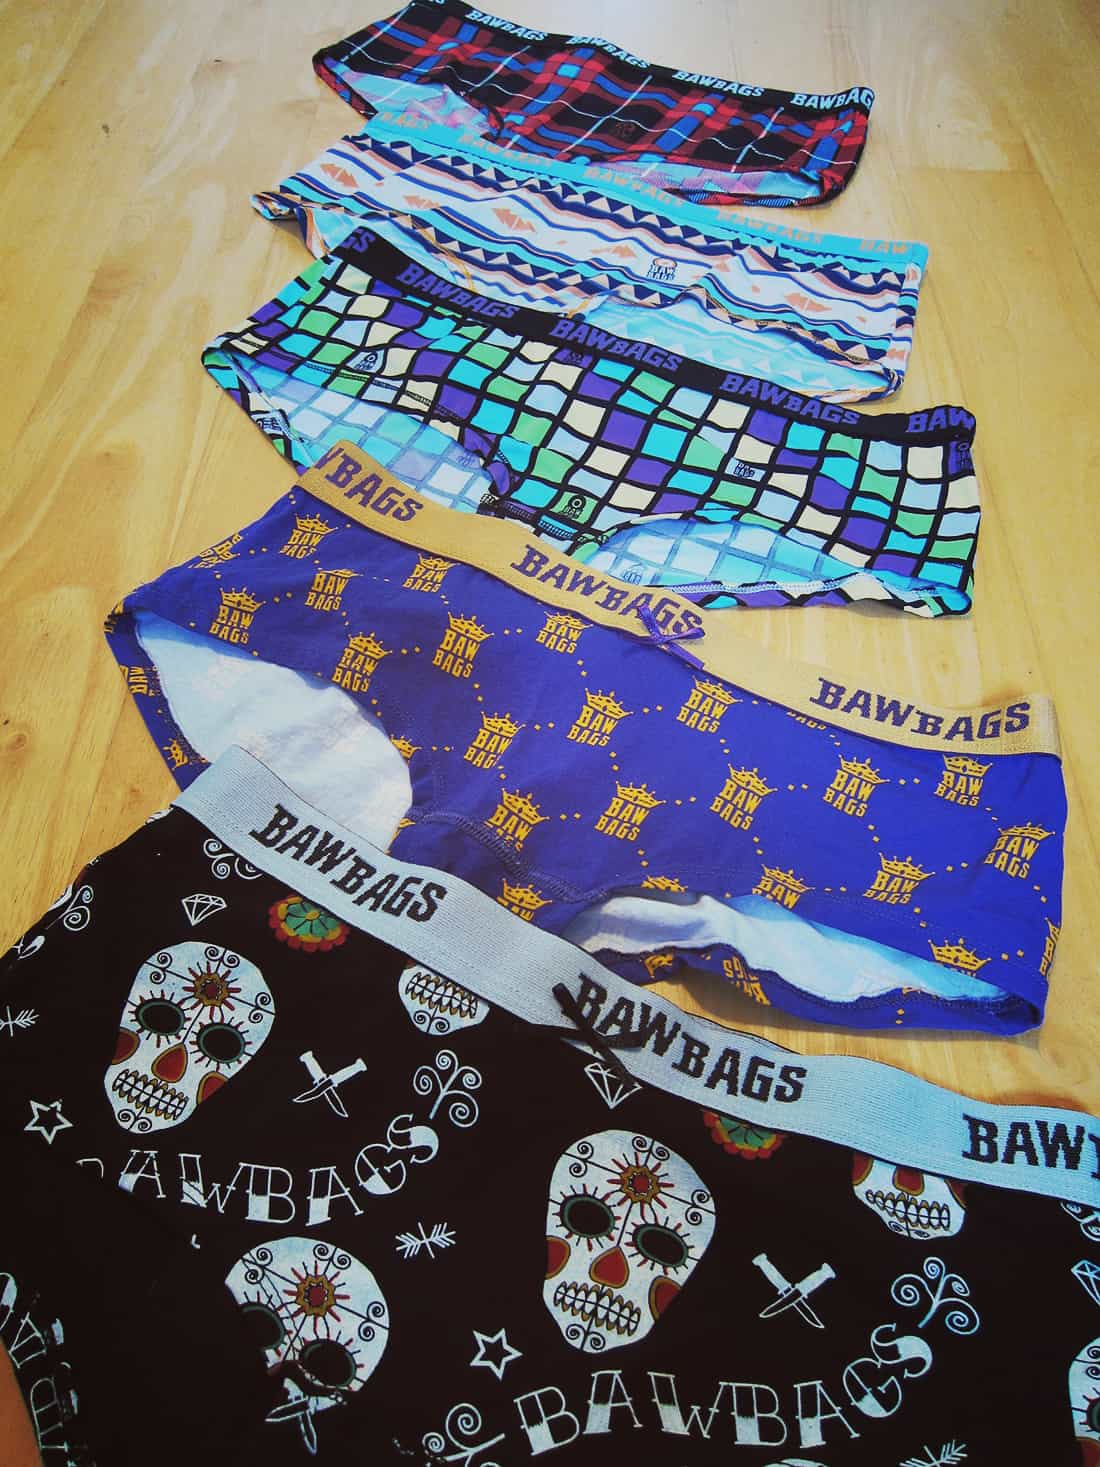 TESTED: BawBags Underwear